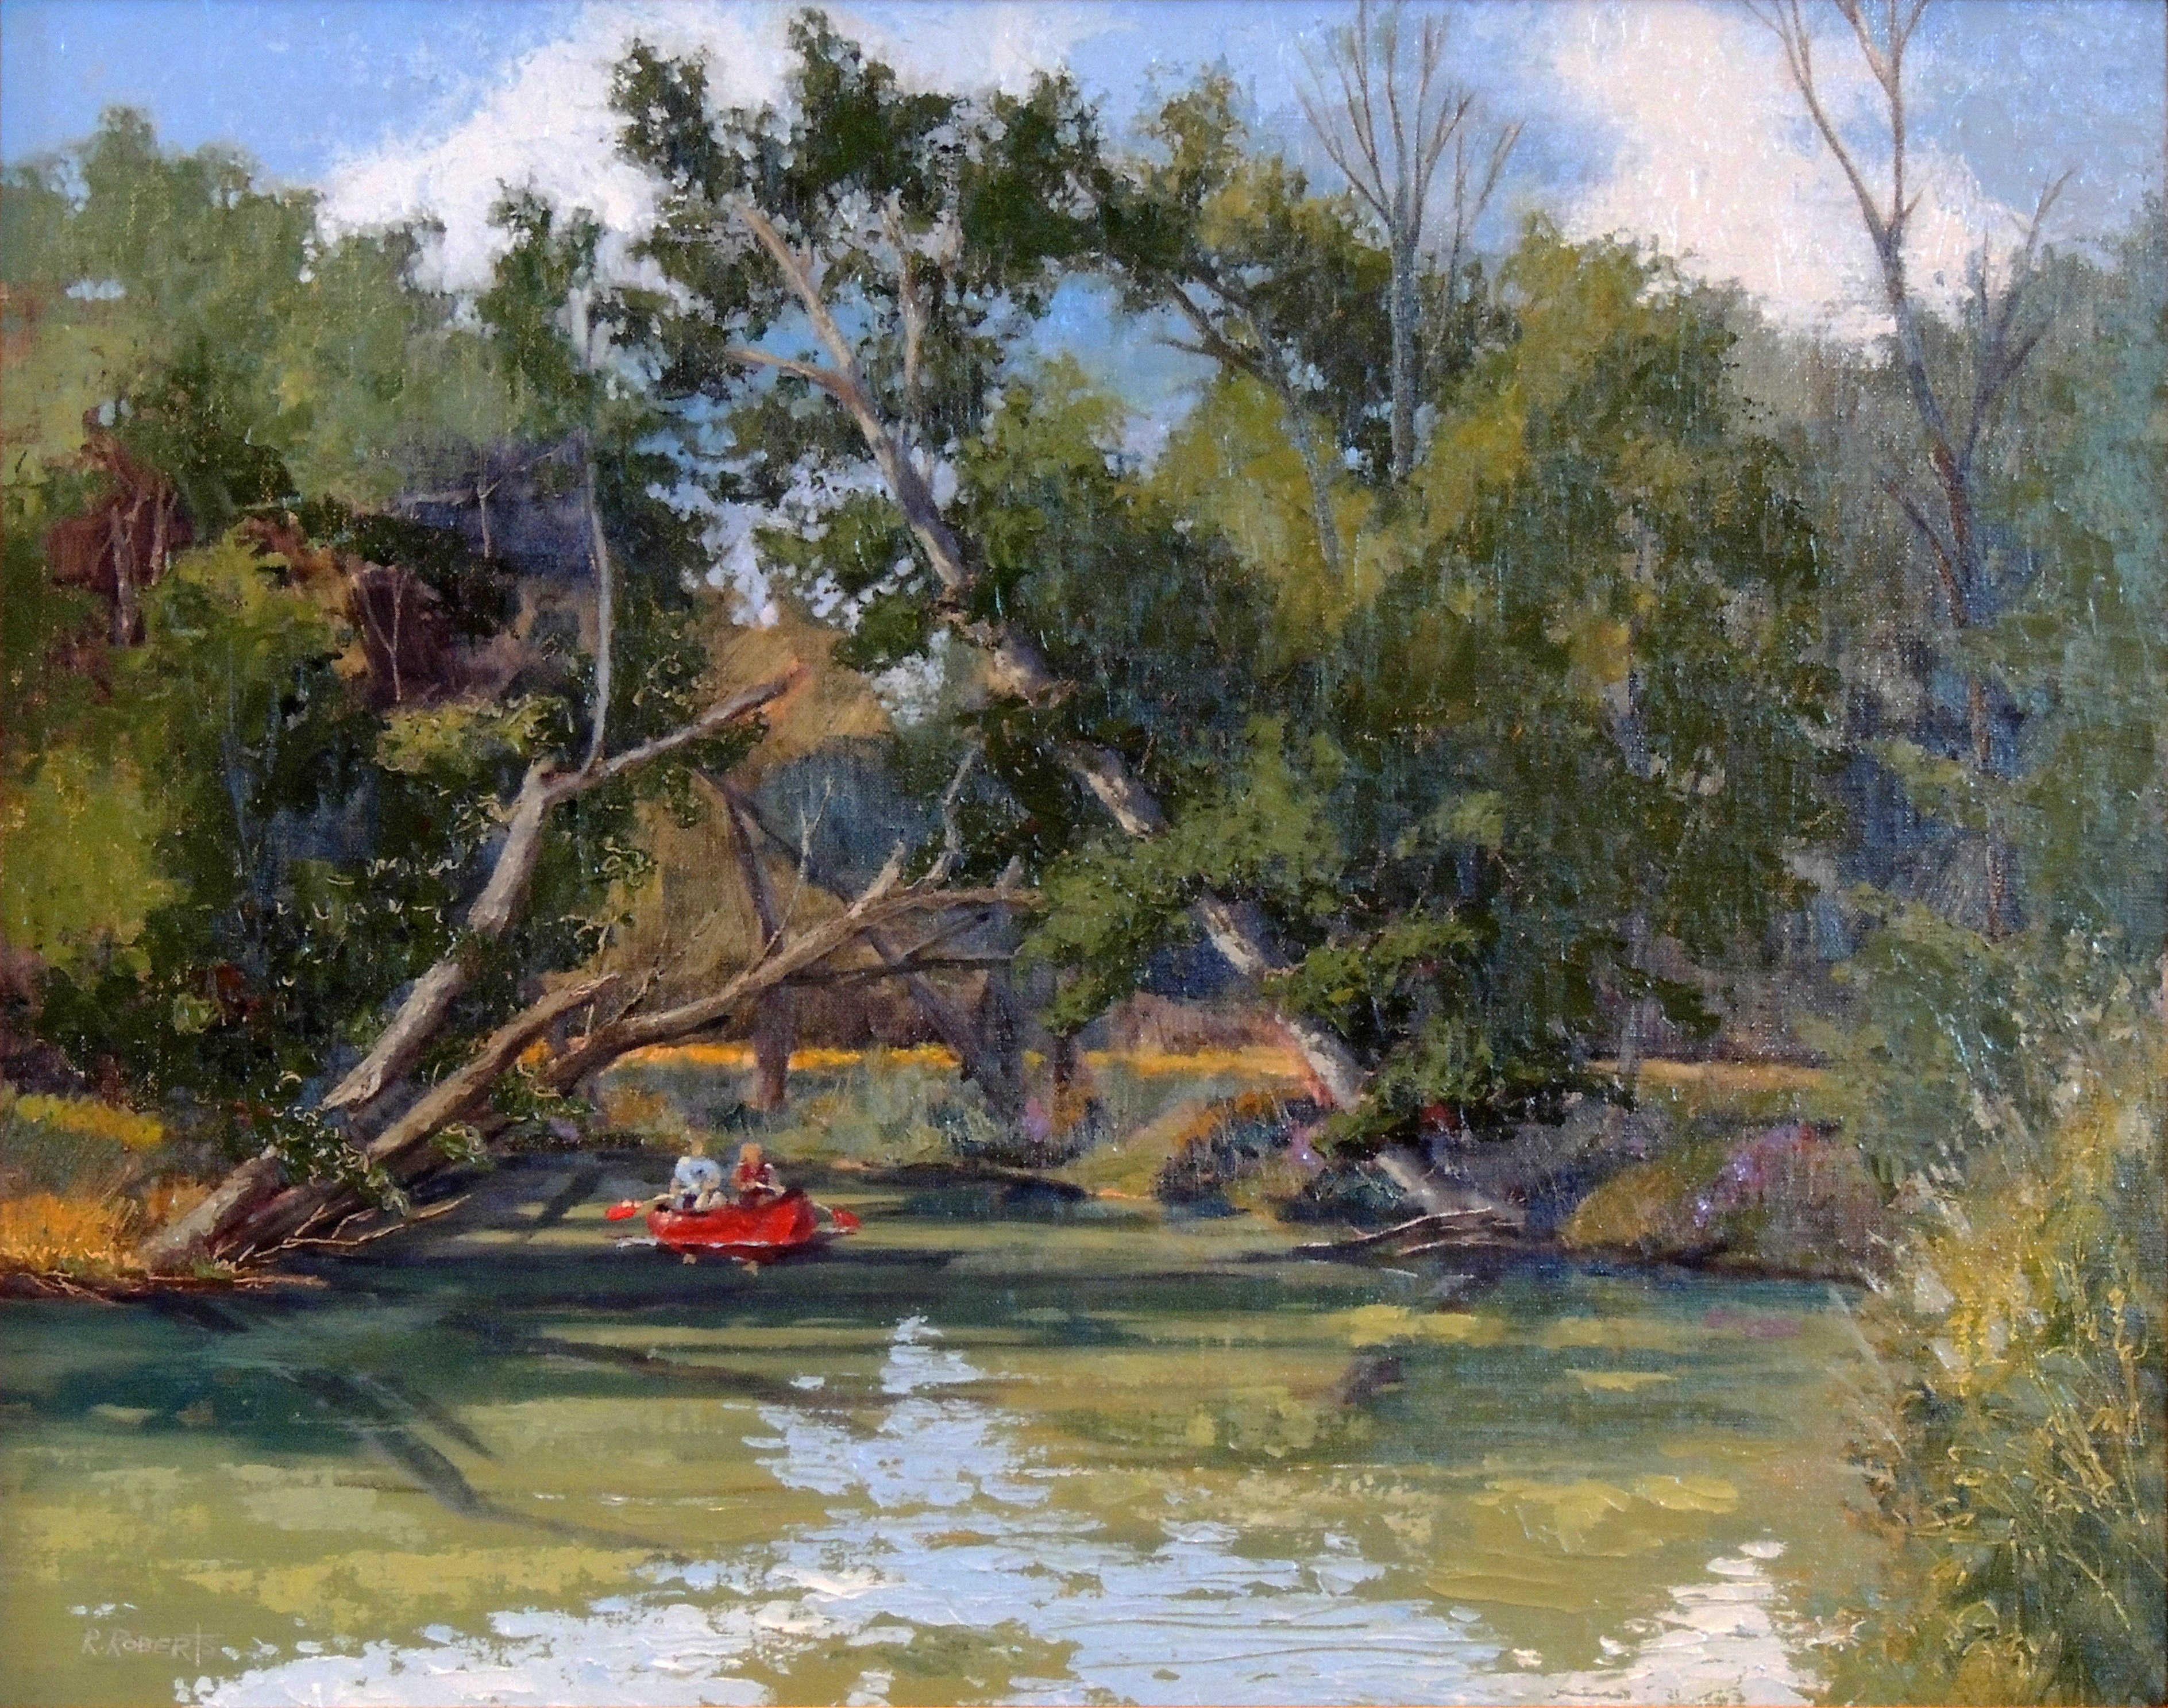 Third Place | Robin Roberts | CANOEING THE MOHICAN RIVER | oil